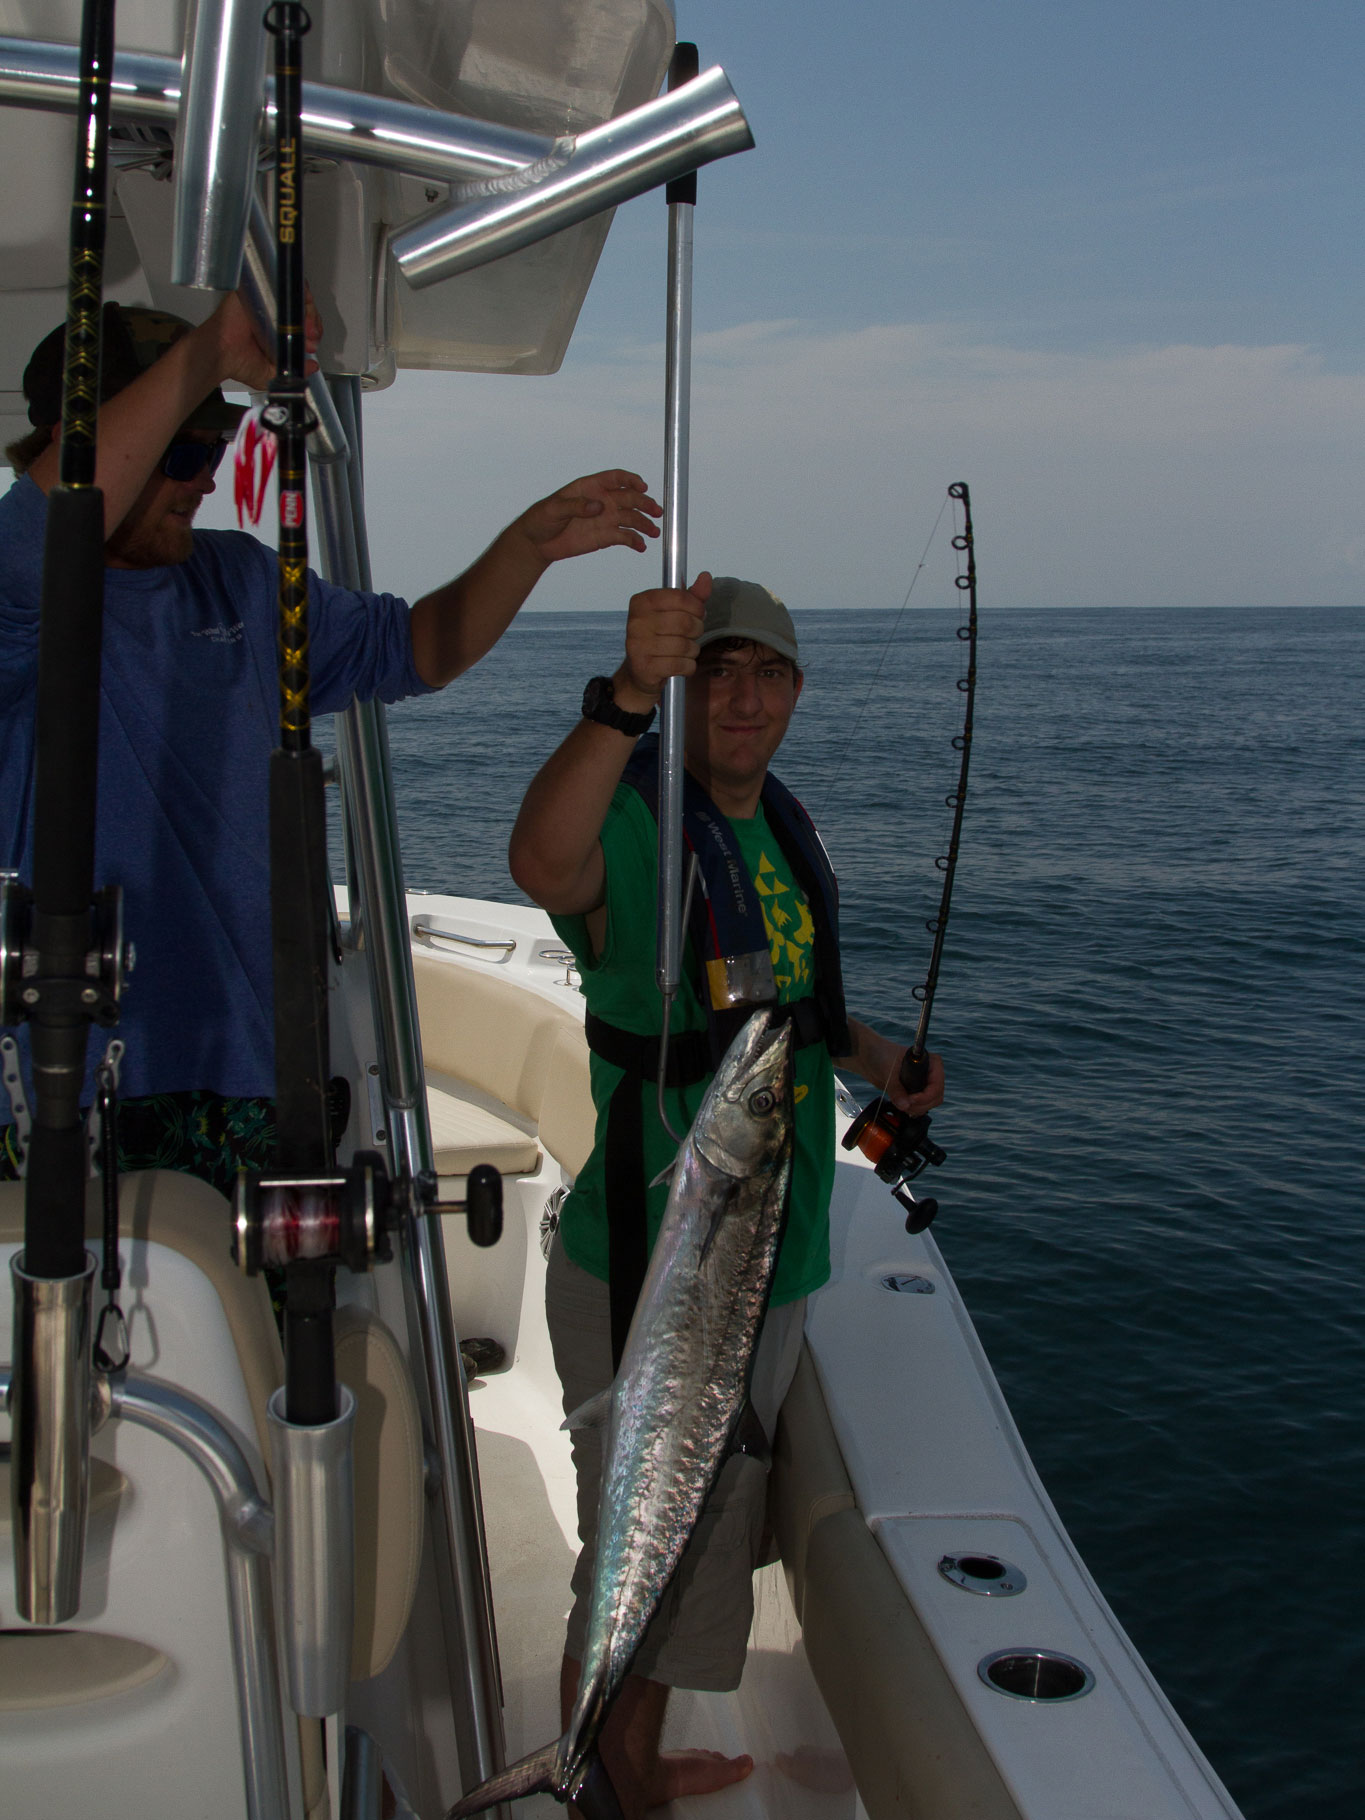 man reeling in fish with assistance from the first mate